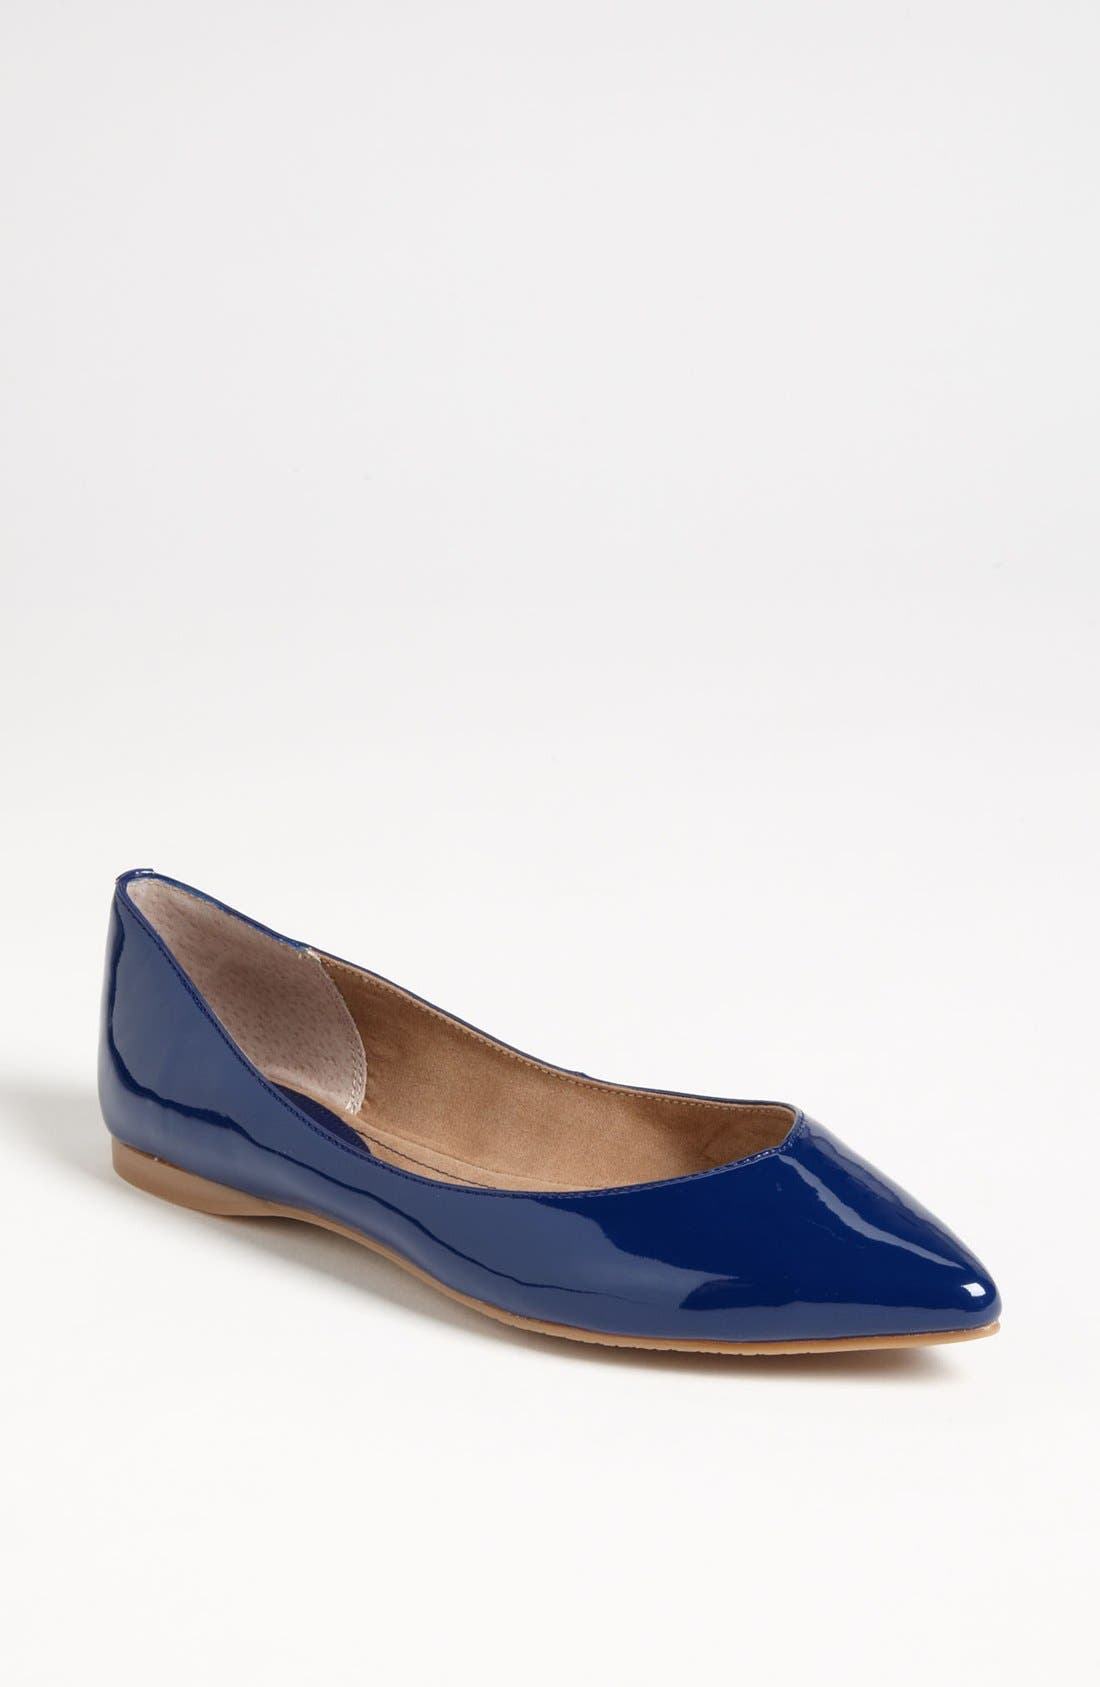 Main Image - BP. 'Moveover' Pointy Toe Flat (Women)